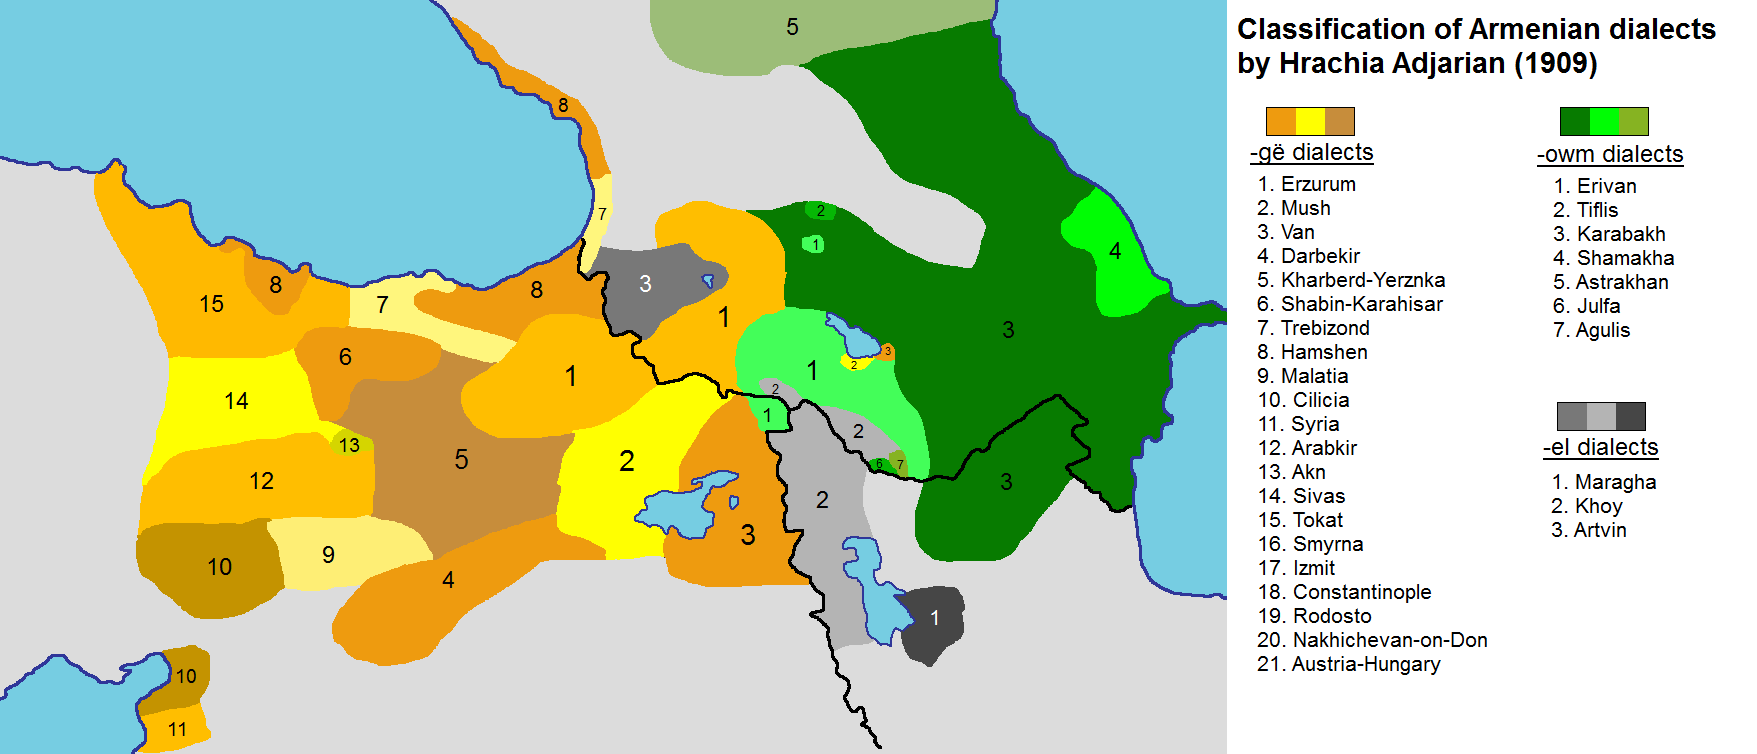 Distribution of Armenian dialects in the Ottoman and Russian empires, according to Adjarian's Classification des dialectes arméniens, published in 1909; many dialects disappeared as a result of the Armenian Genocide and due to other demographic and social shifts of the 20th century.